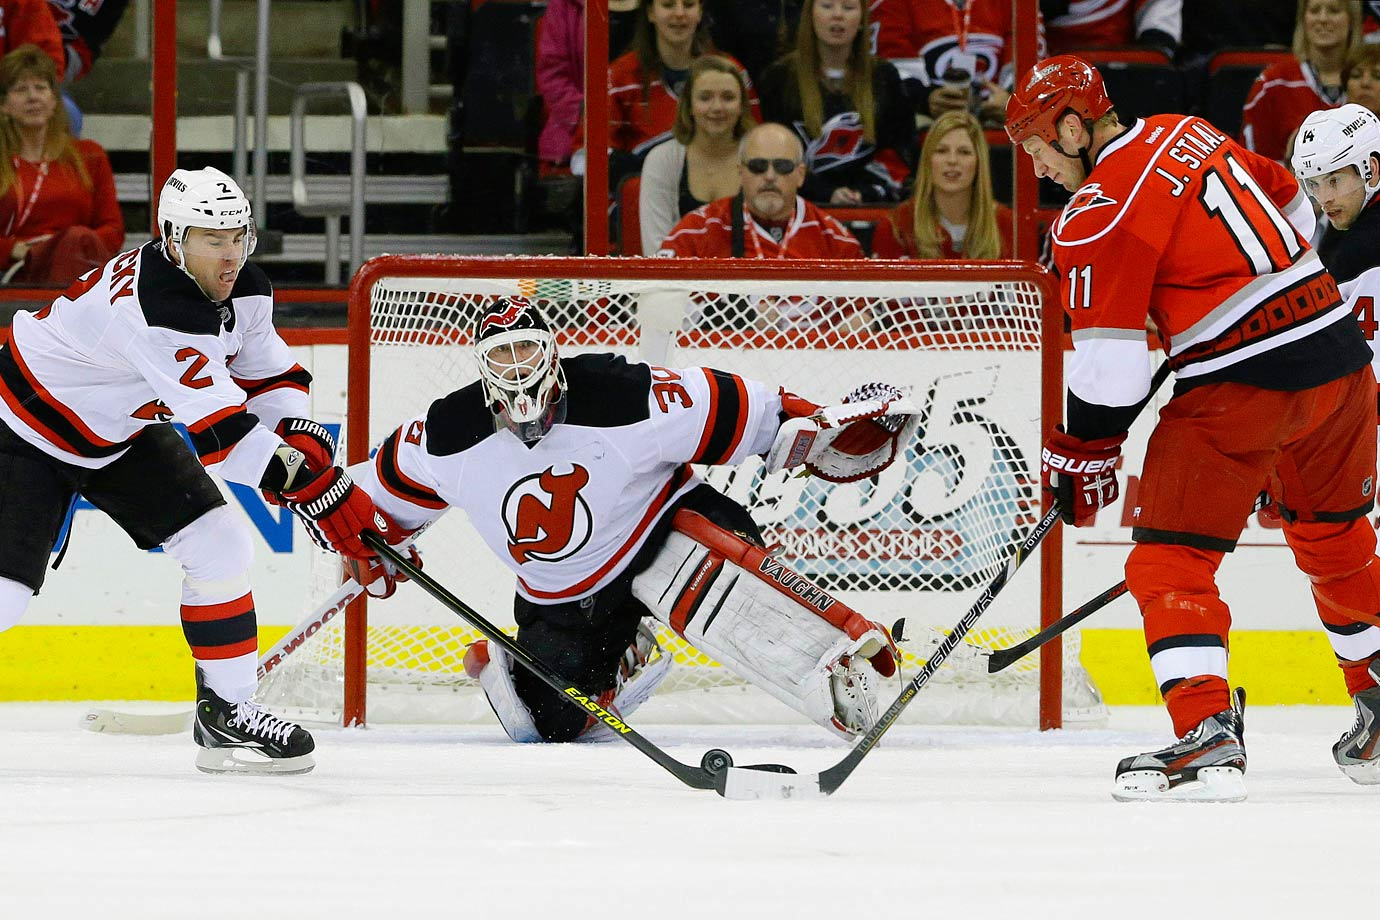 After missing a month of action due to a nerve injury in his back, Brodeur returned to the net on March 21, 2013 with some of his old stick magic, scoring a power play goal against the Carolina Hurricanes that made him the only NHL goalie to record three career tallies, and the second after Evgeni Nabokov of the Sharks to light the lamp with the man advantage.